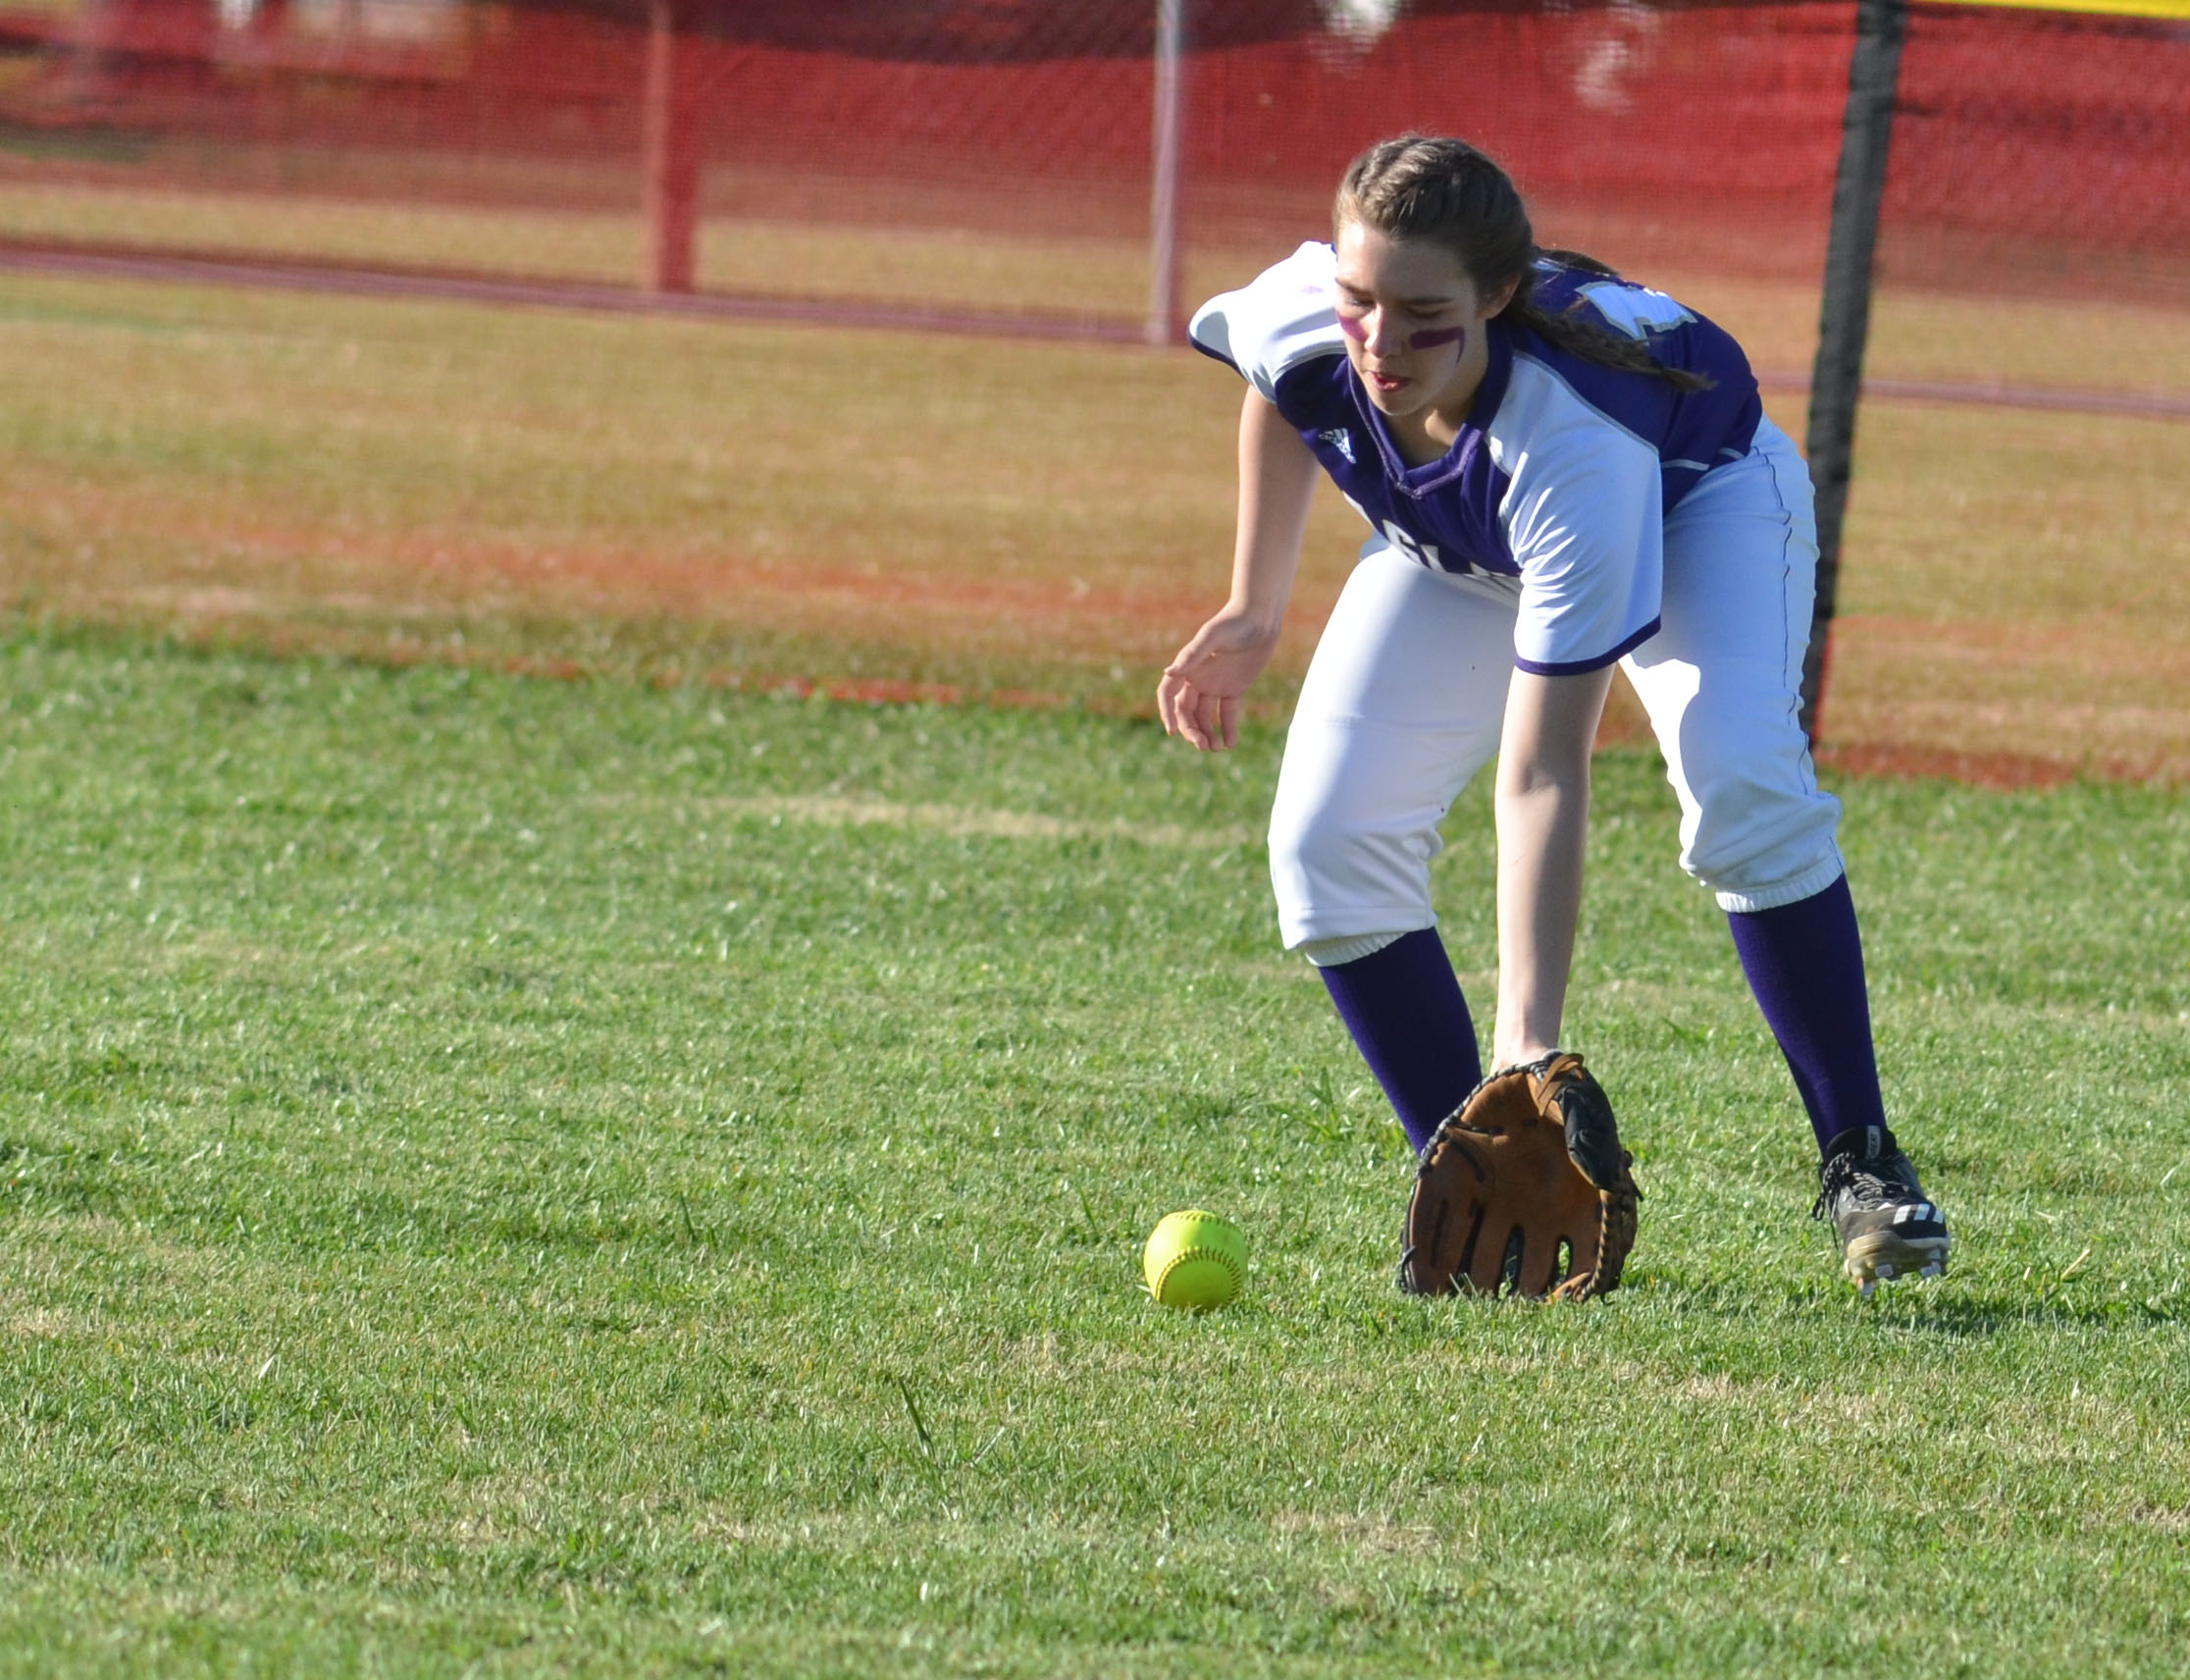 Campbellsville Middle School eighth-grader Abi Wiedewitsch fields the ball.